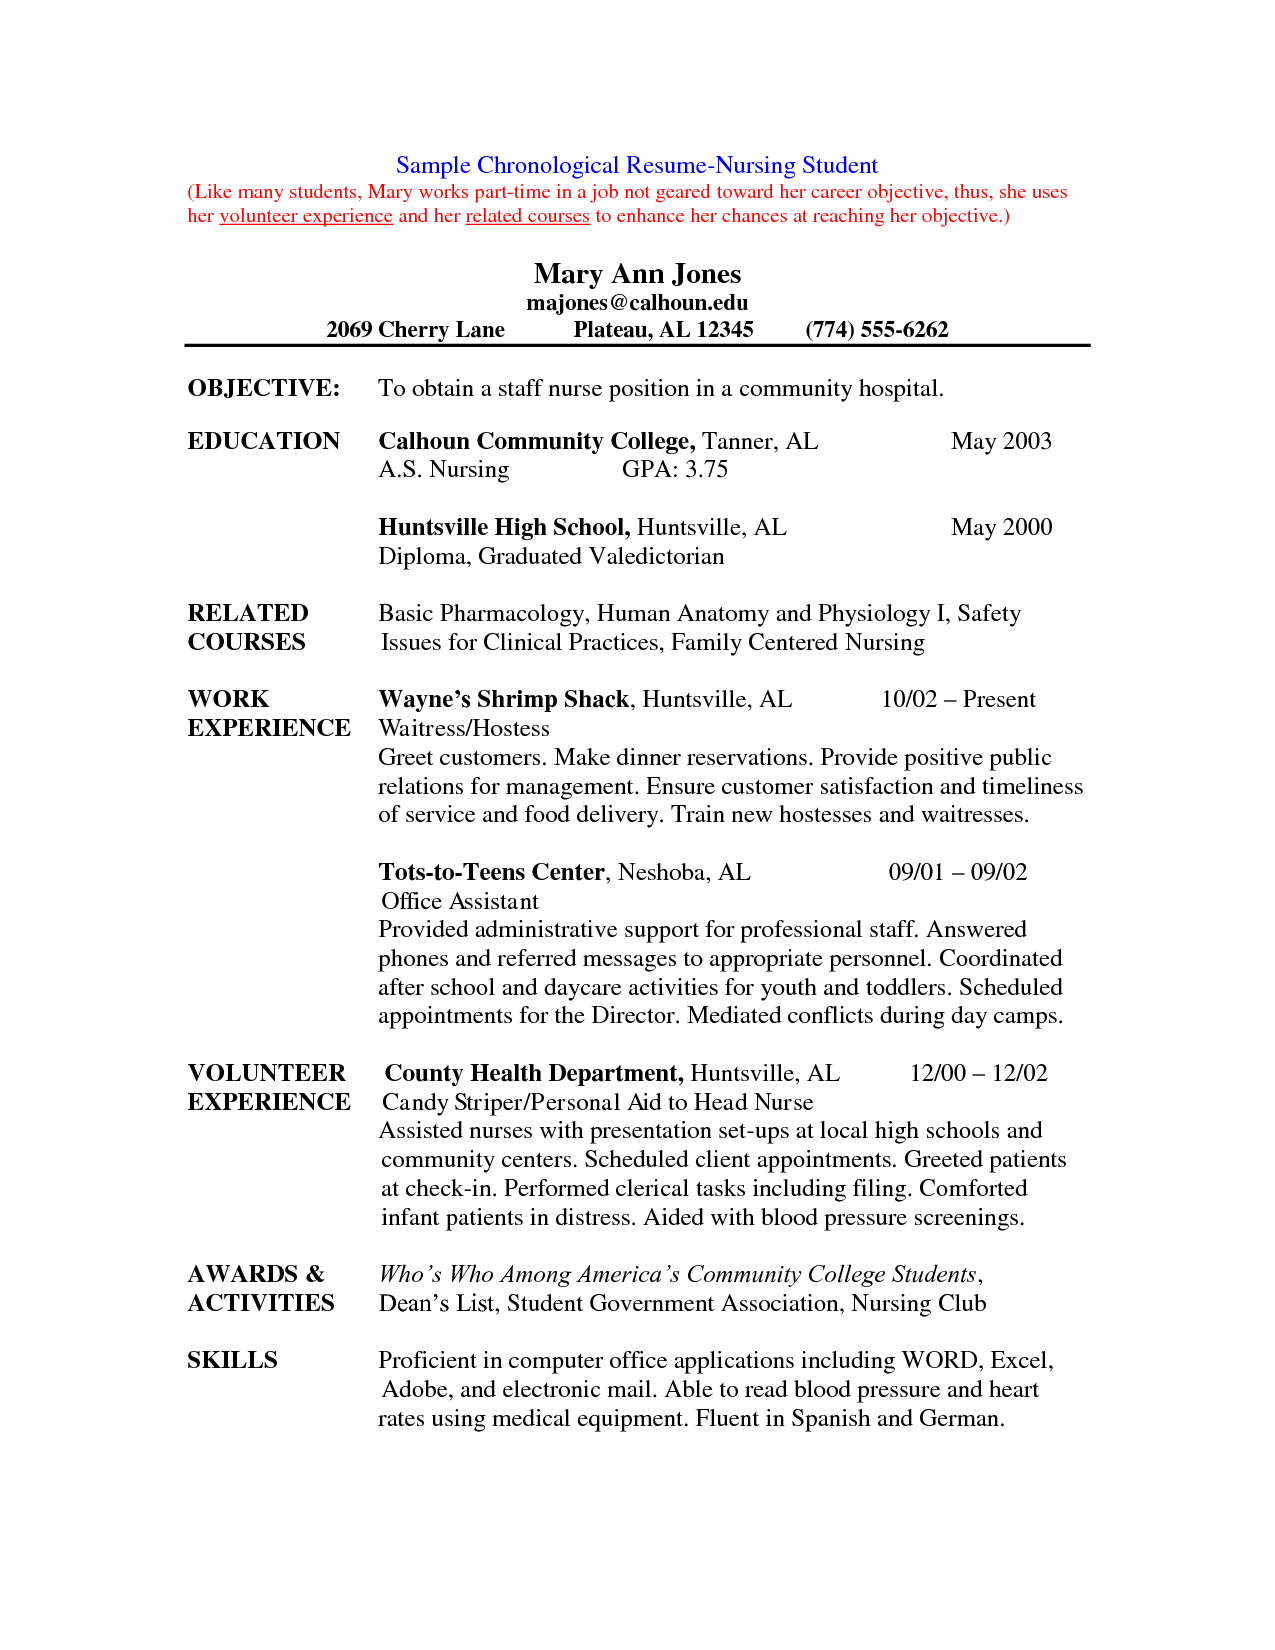 cover letters for nursing job application pdf nursing samplenursing get resume